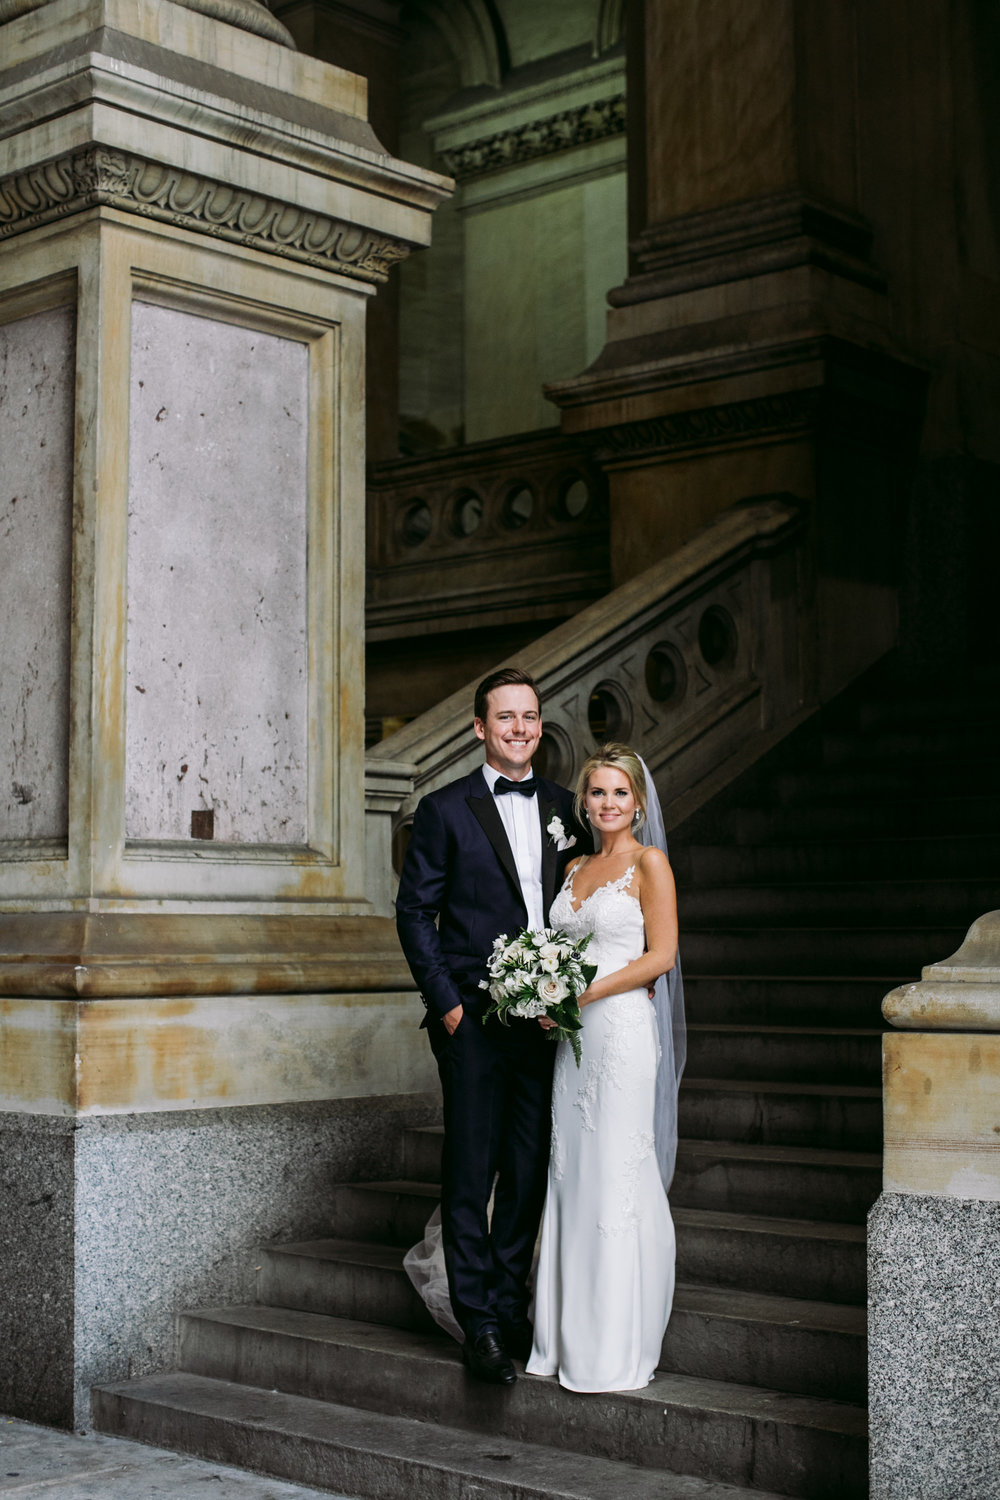 photography-wedding-weddings-natural-candid-union league-philadelphia-black tie-city hall-broad street-editorial-modern-fine-art-20.JPG